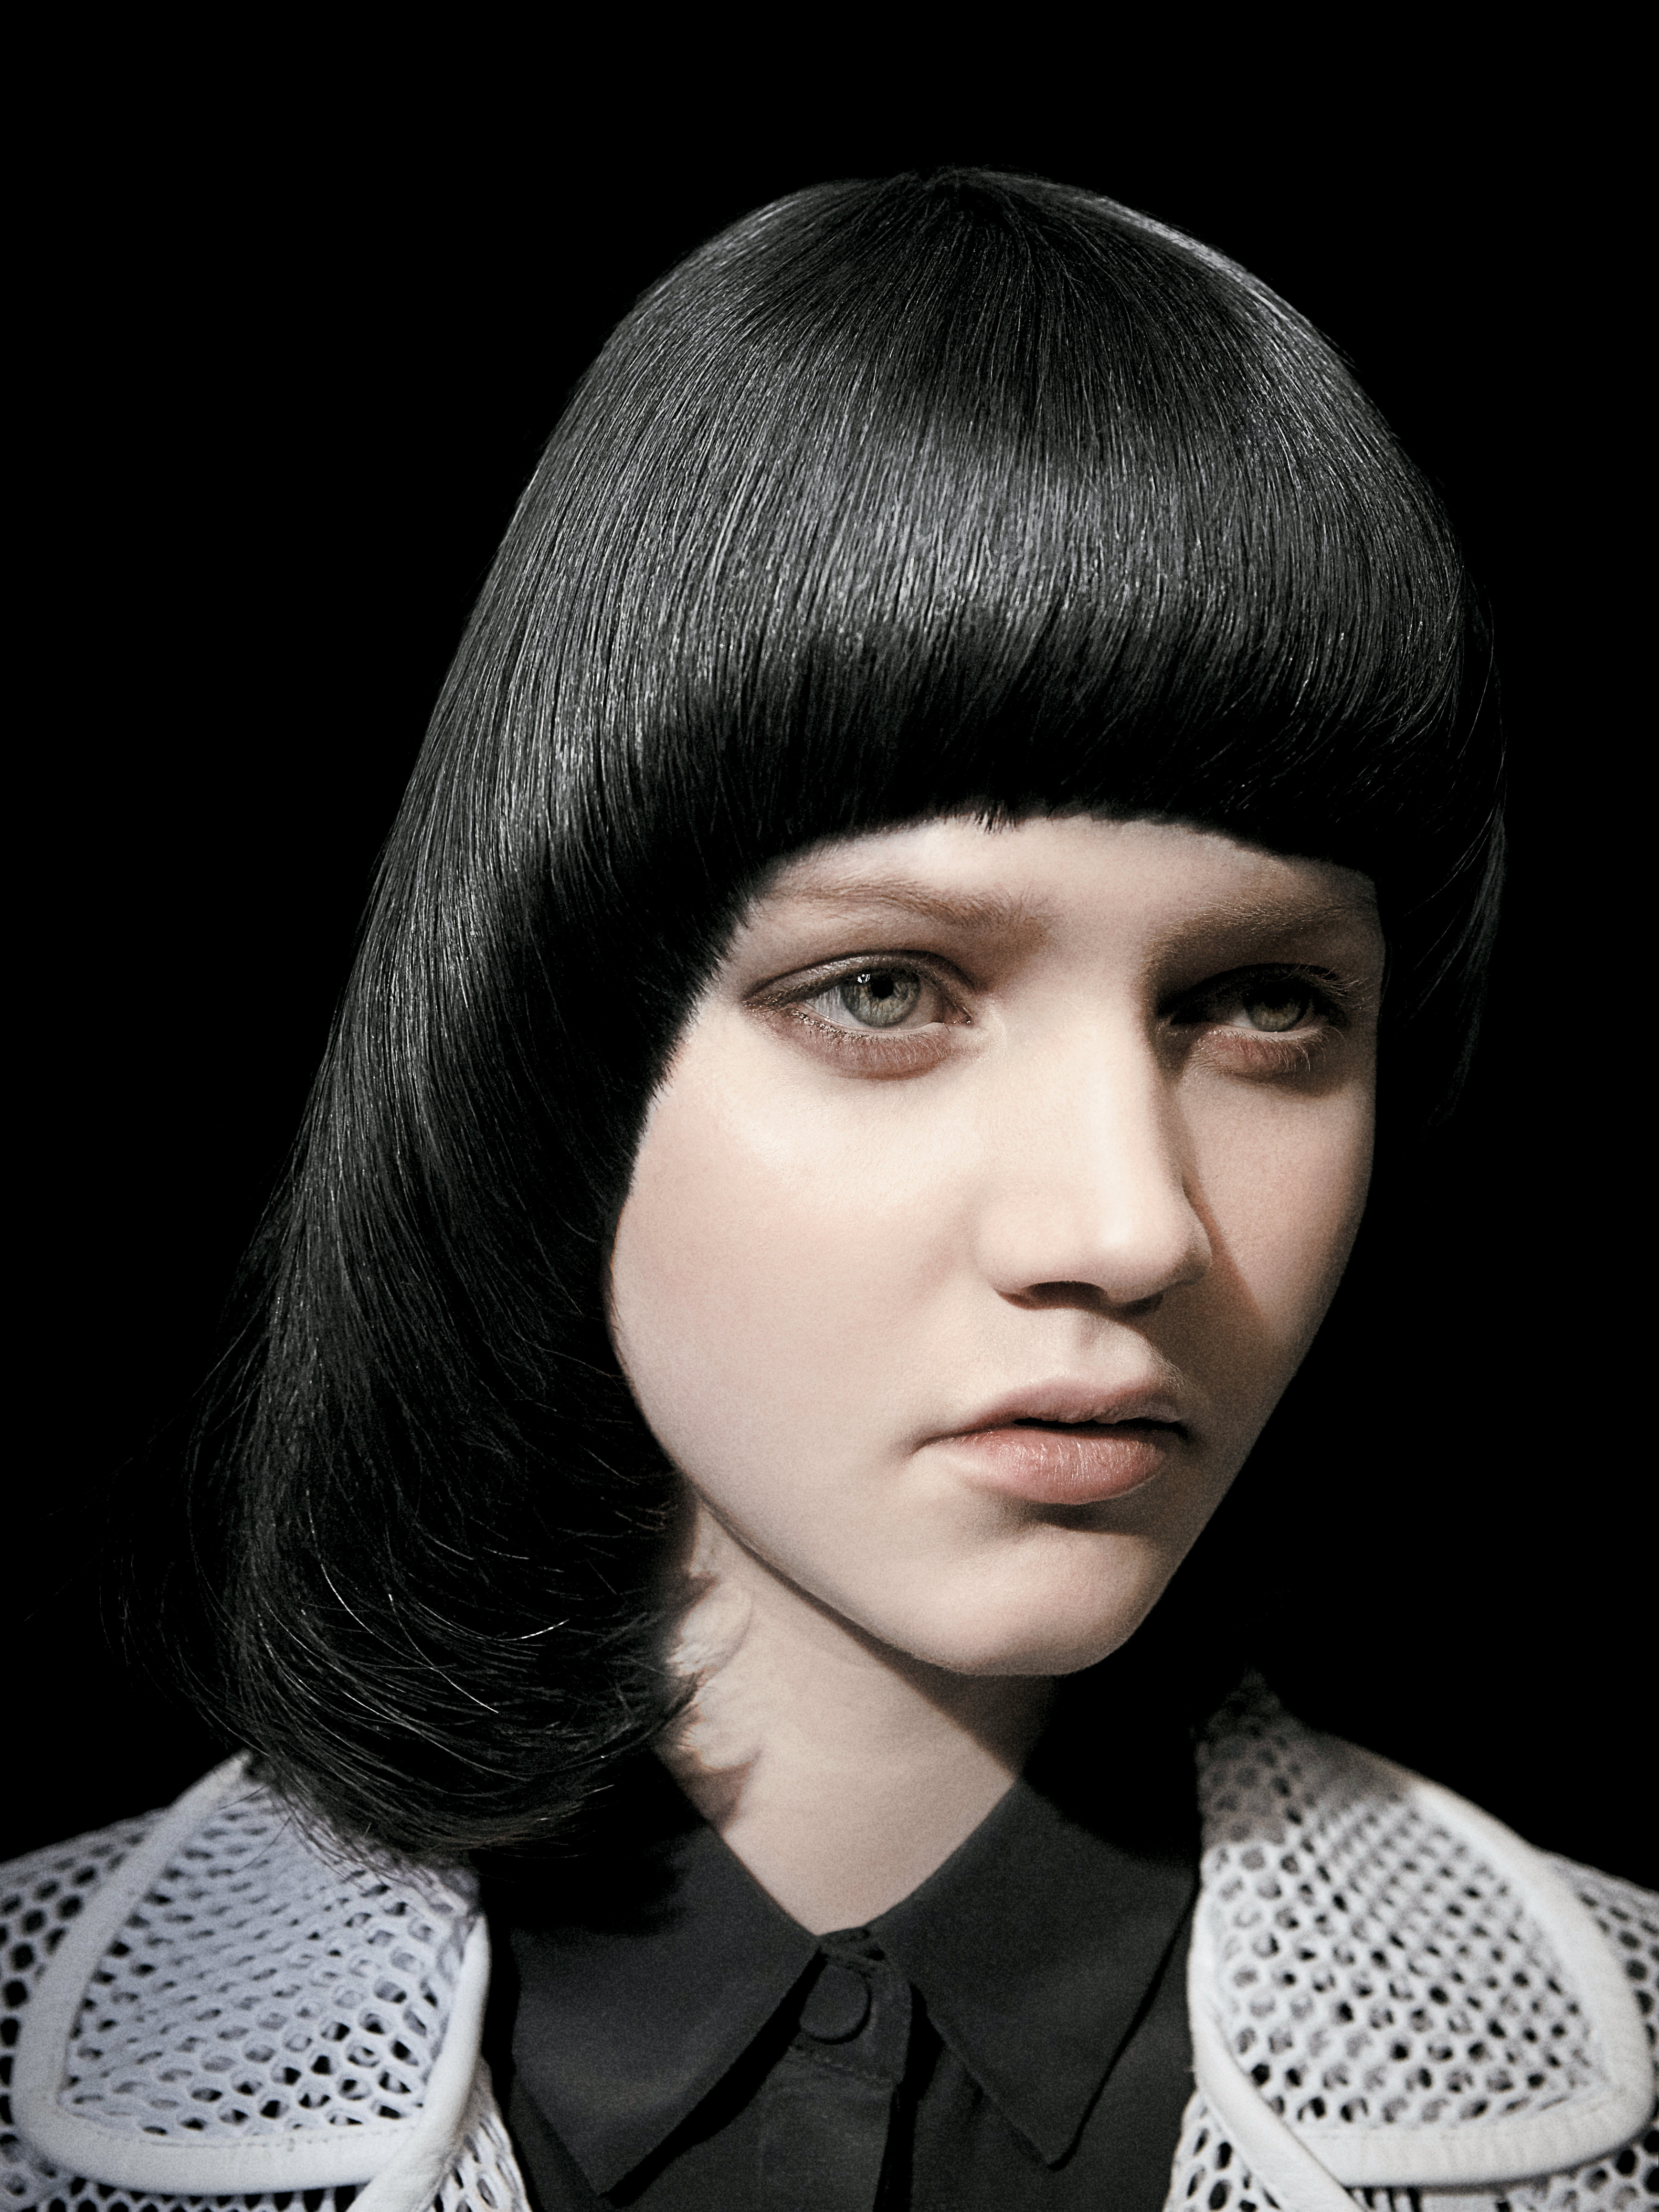 This bowl cut was inspired by '70s punk rockers, The Ramones.